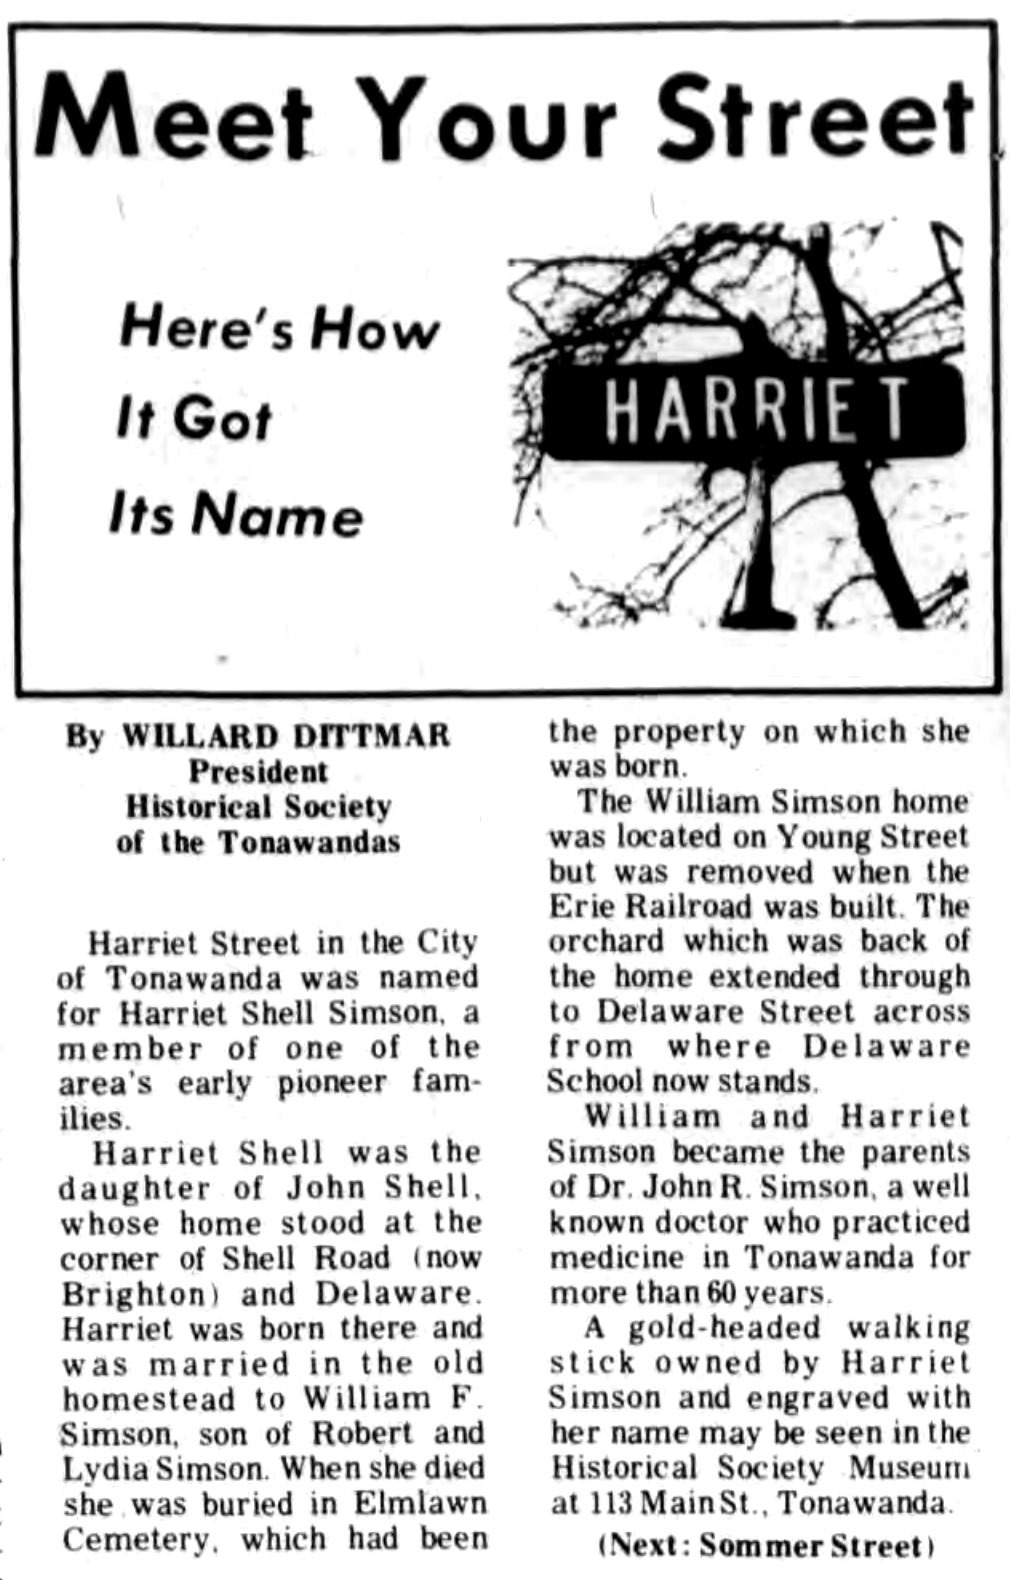 Meet Your Street - Harriet Street in Tonawanda (Tonawanada News, 1970-01-24).jpg